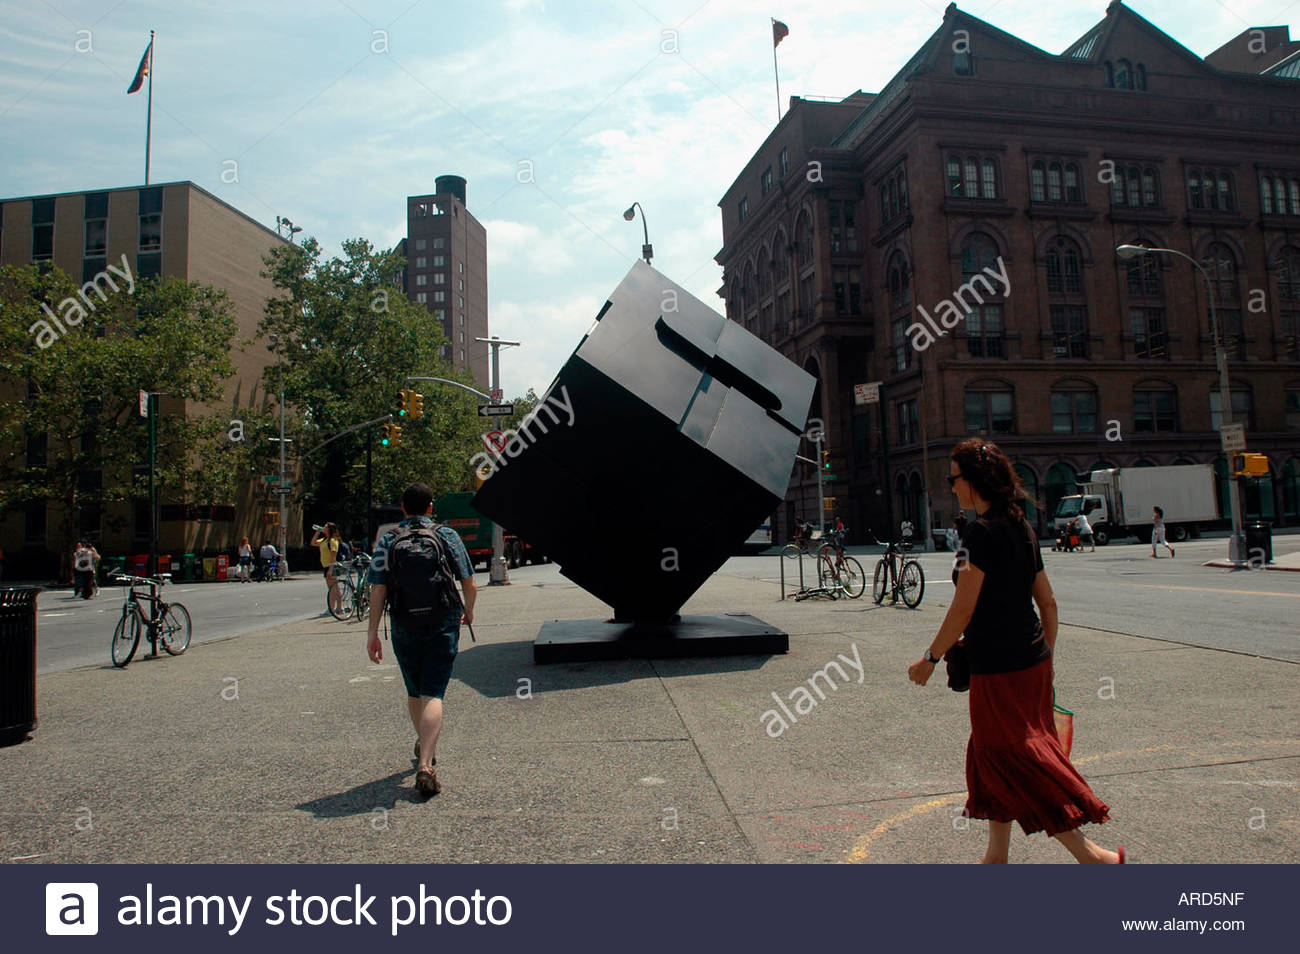 Alamo sculpture in Astor Place in the East Village in NYC - Stock Image